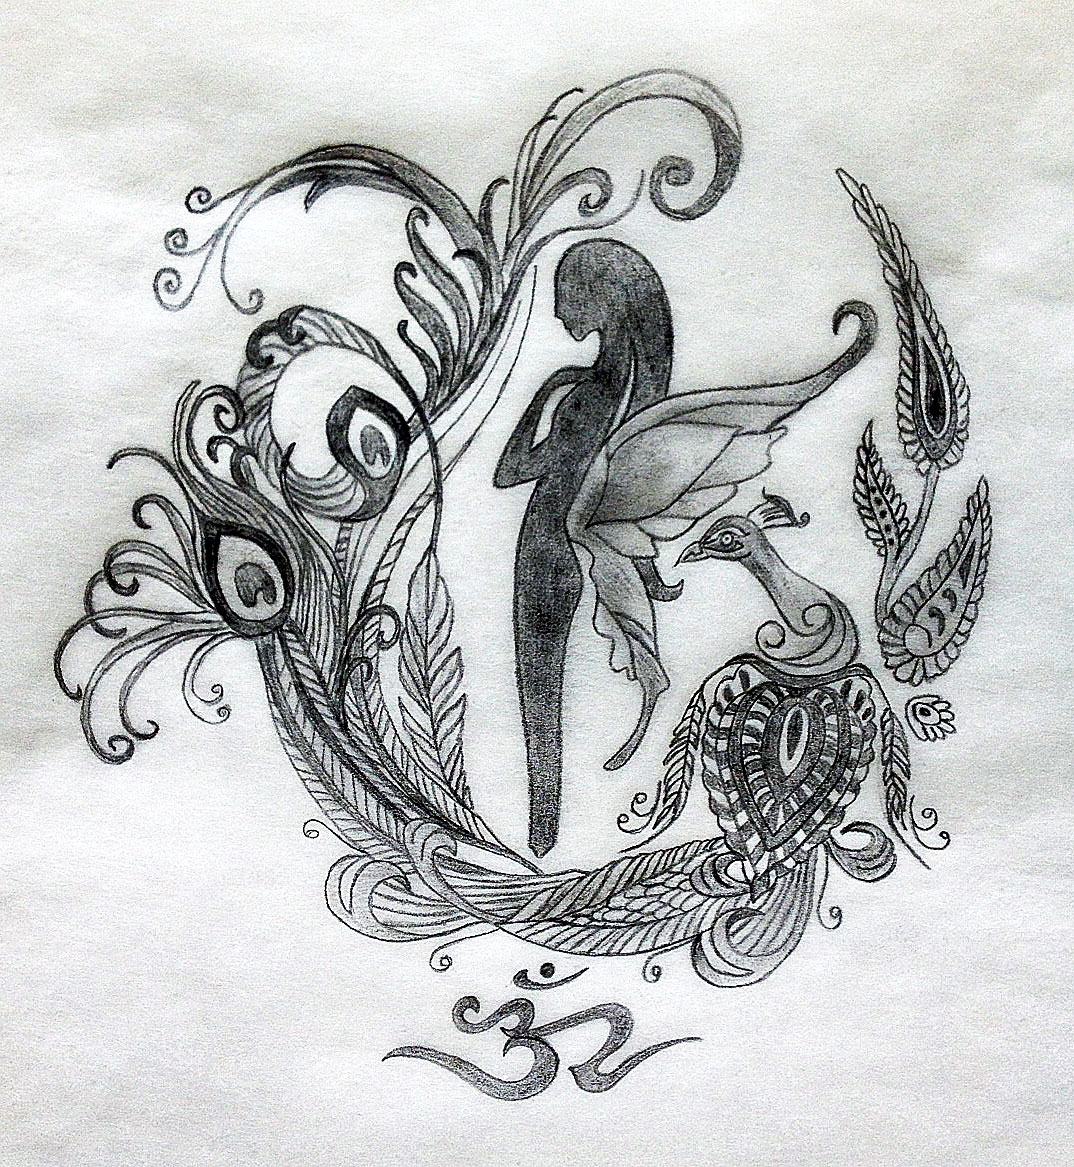 Paisley symbolism tania maries blog sacred tattoo design biocorpaavc Gallery